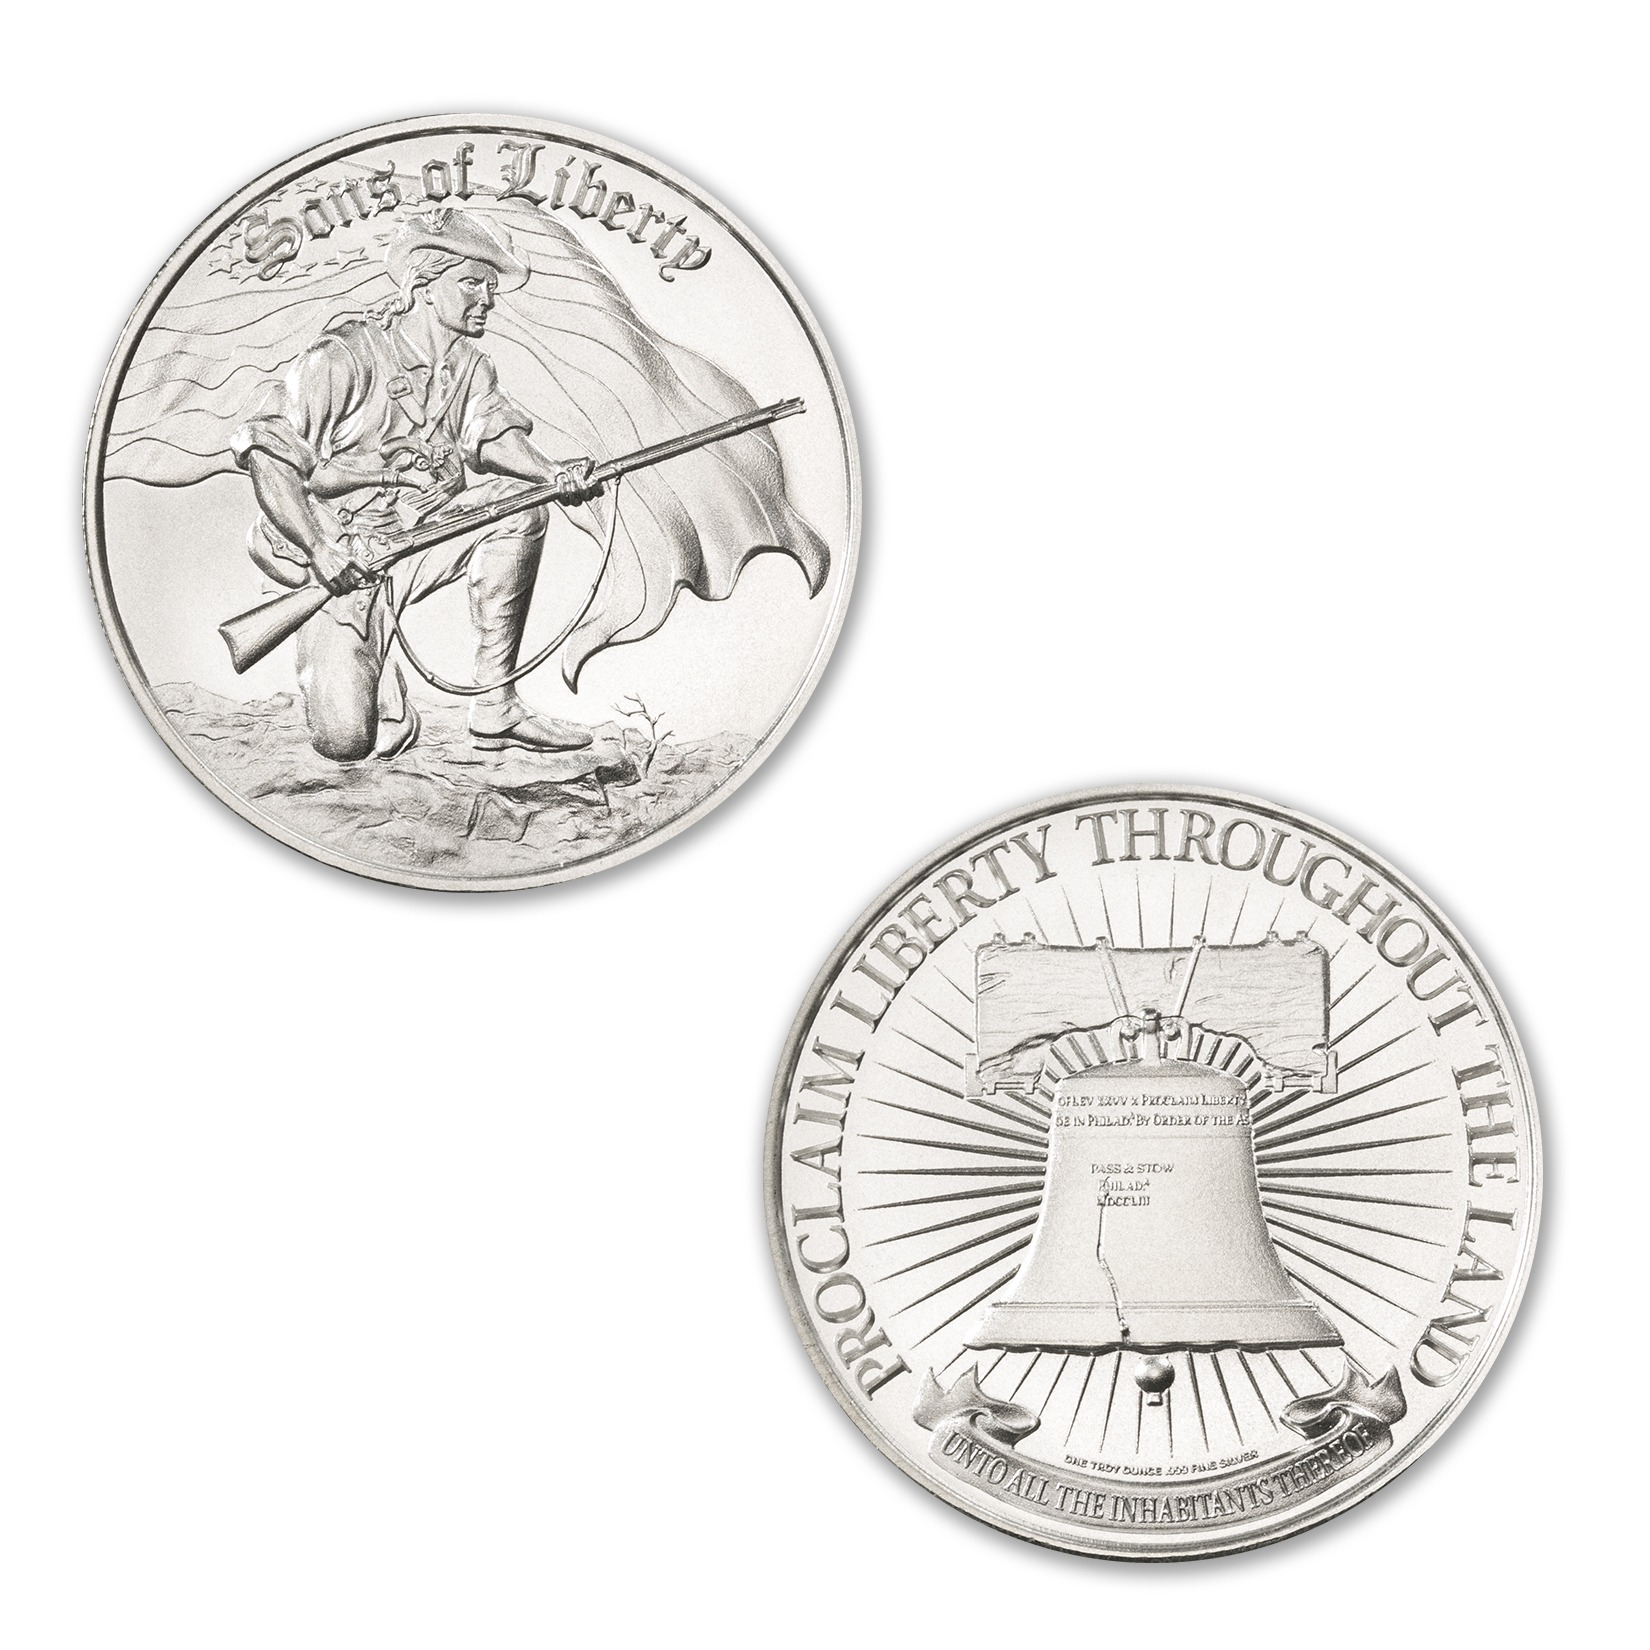 SONS OF LIBERTY, TYPE III – 1 TROY OUNCE – 39MM (ONLY 500 MINTED!)